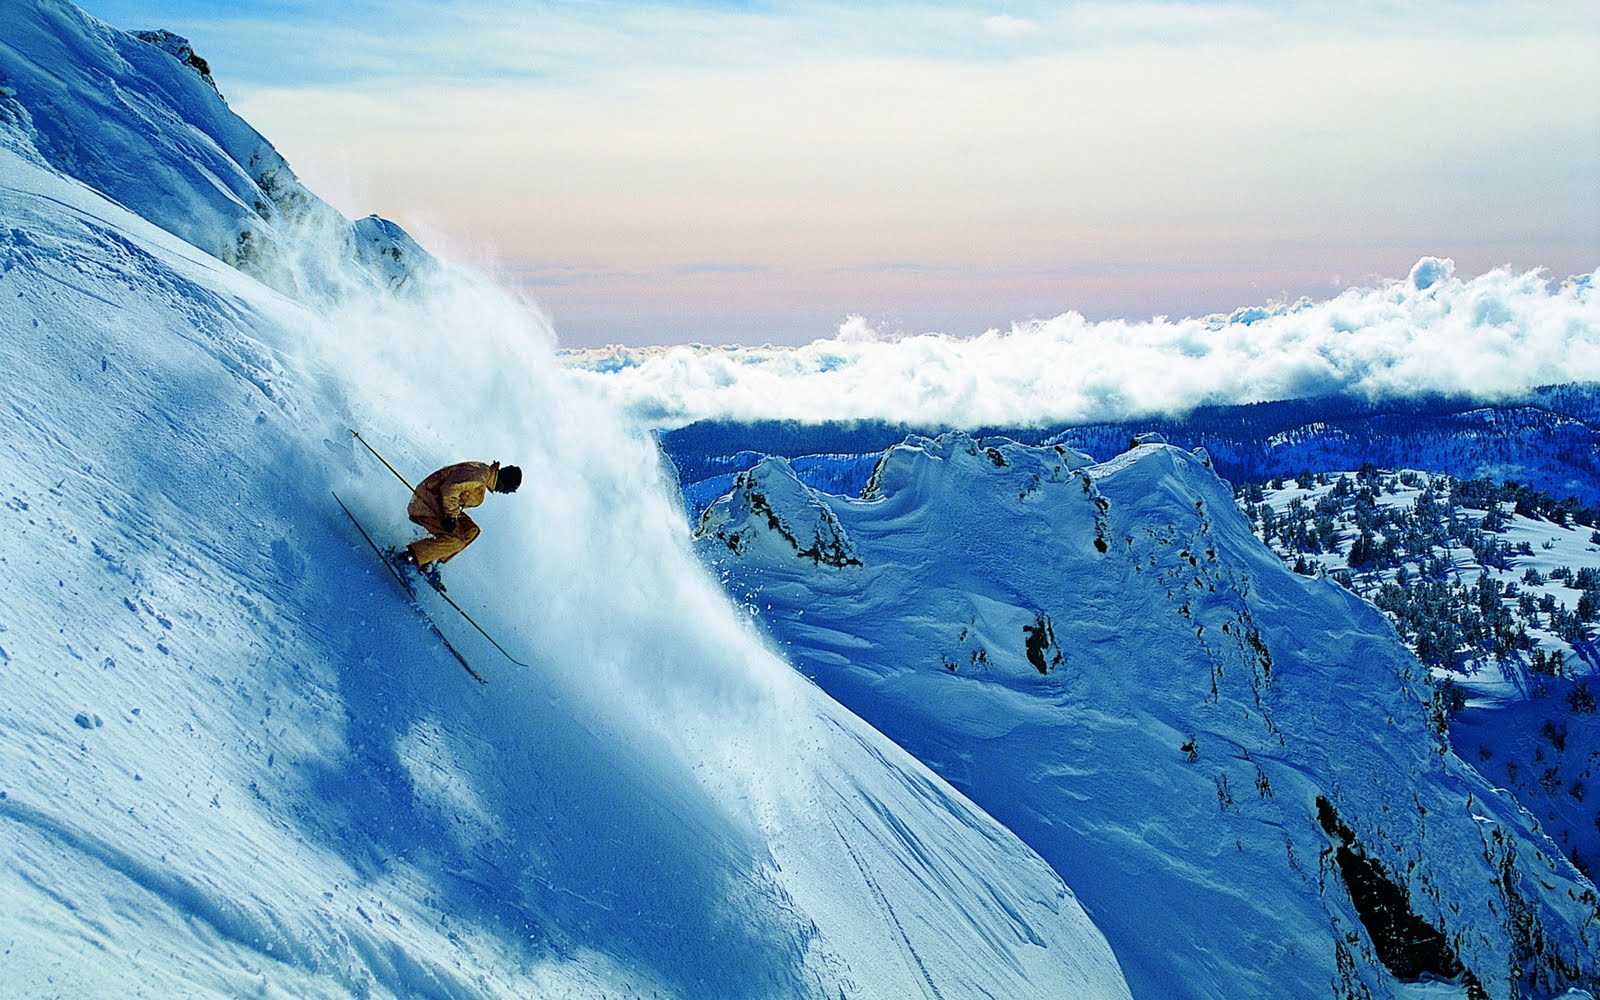 Extreme Sports Wallpapers: ONLY 4 WALLPAPER: AMAZING EXTREME SPORTS WALLPAPER [PART 9]